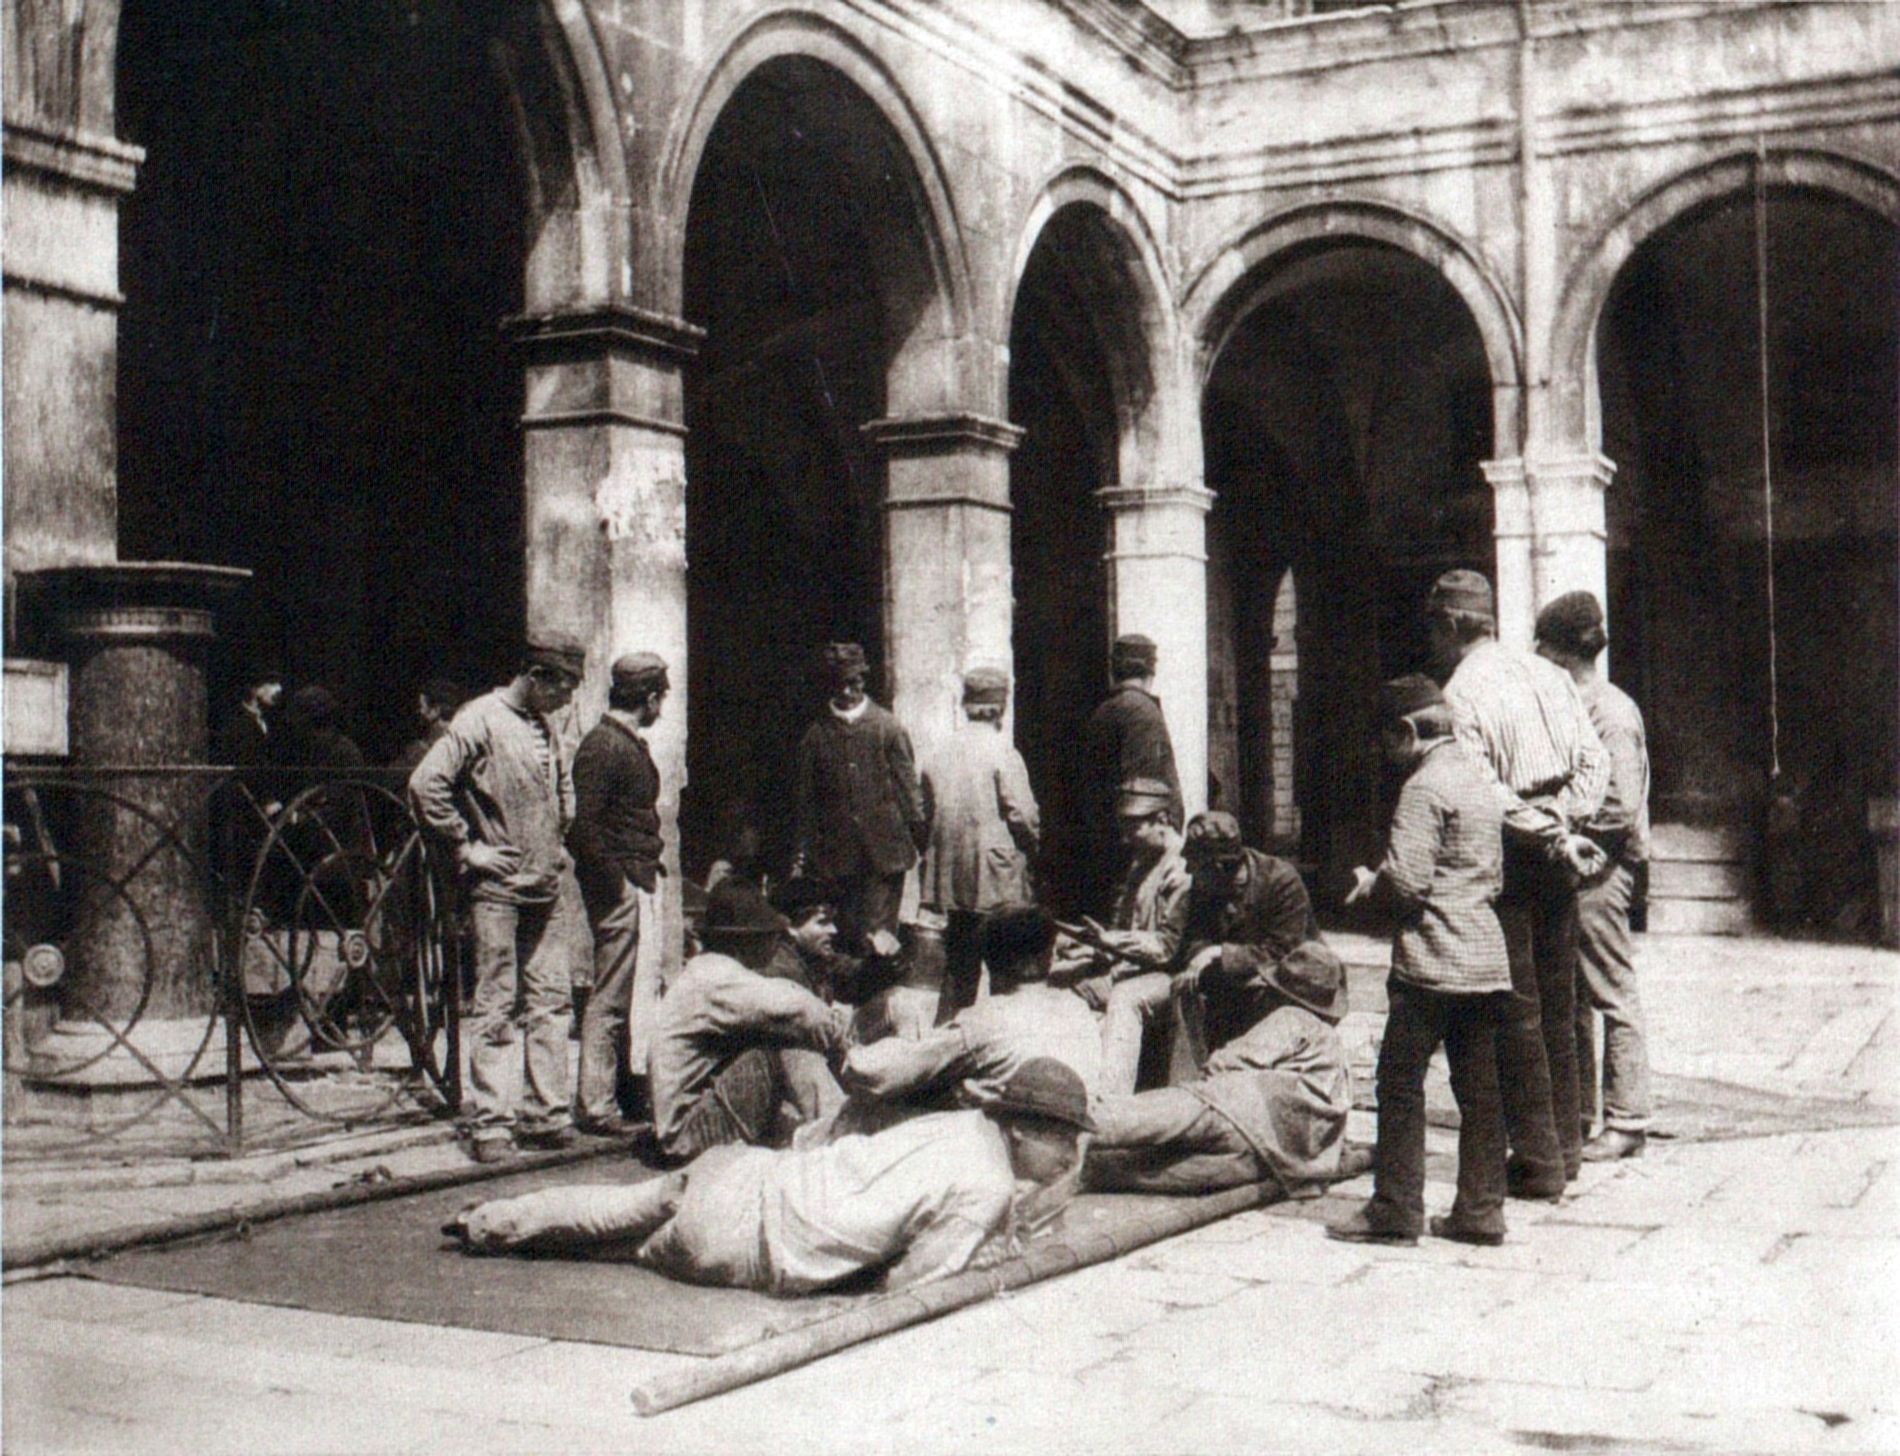 Morra Players in Venice Italy about 1894